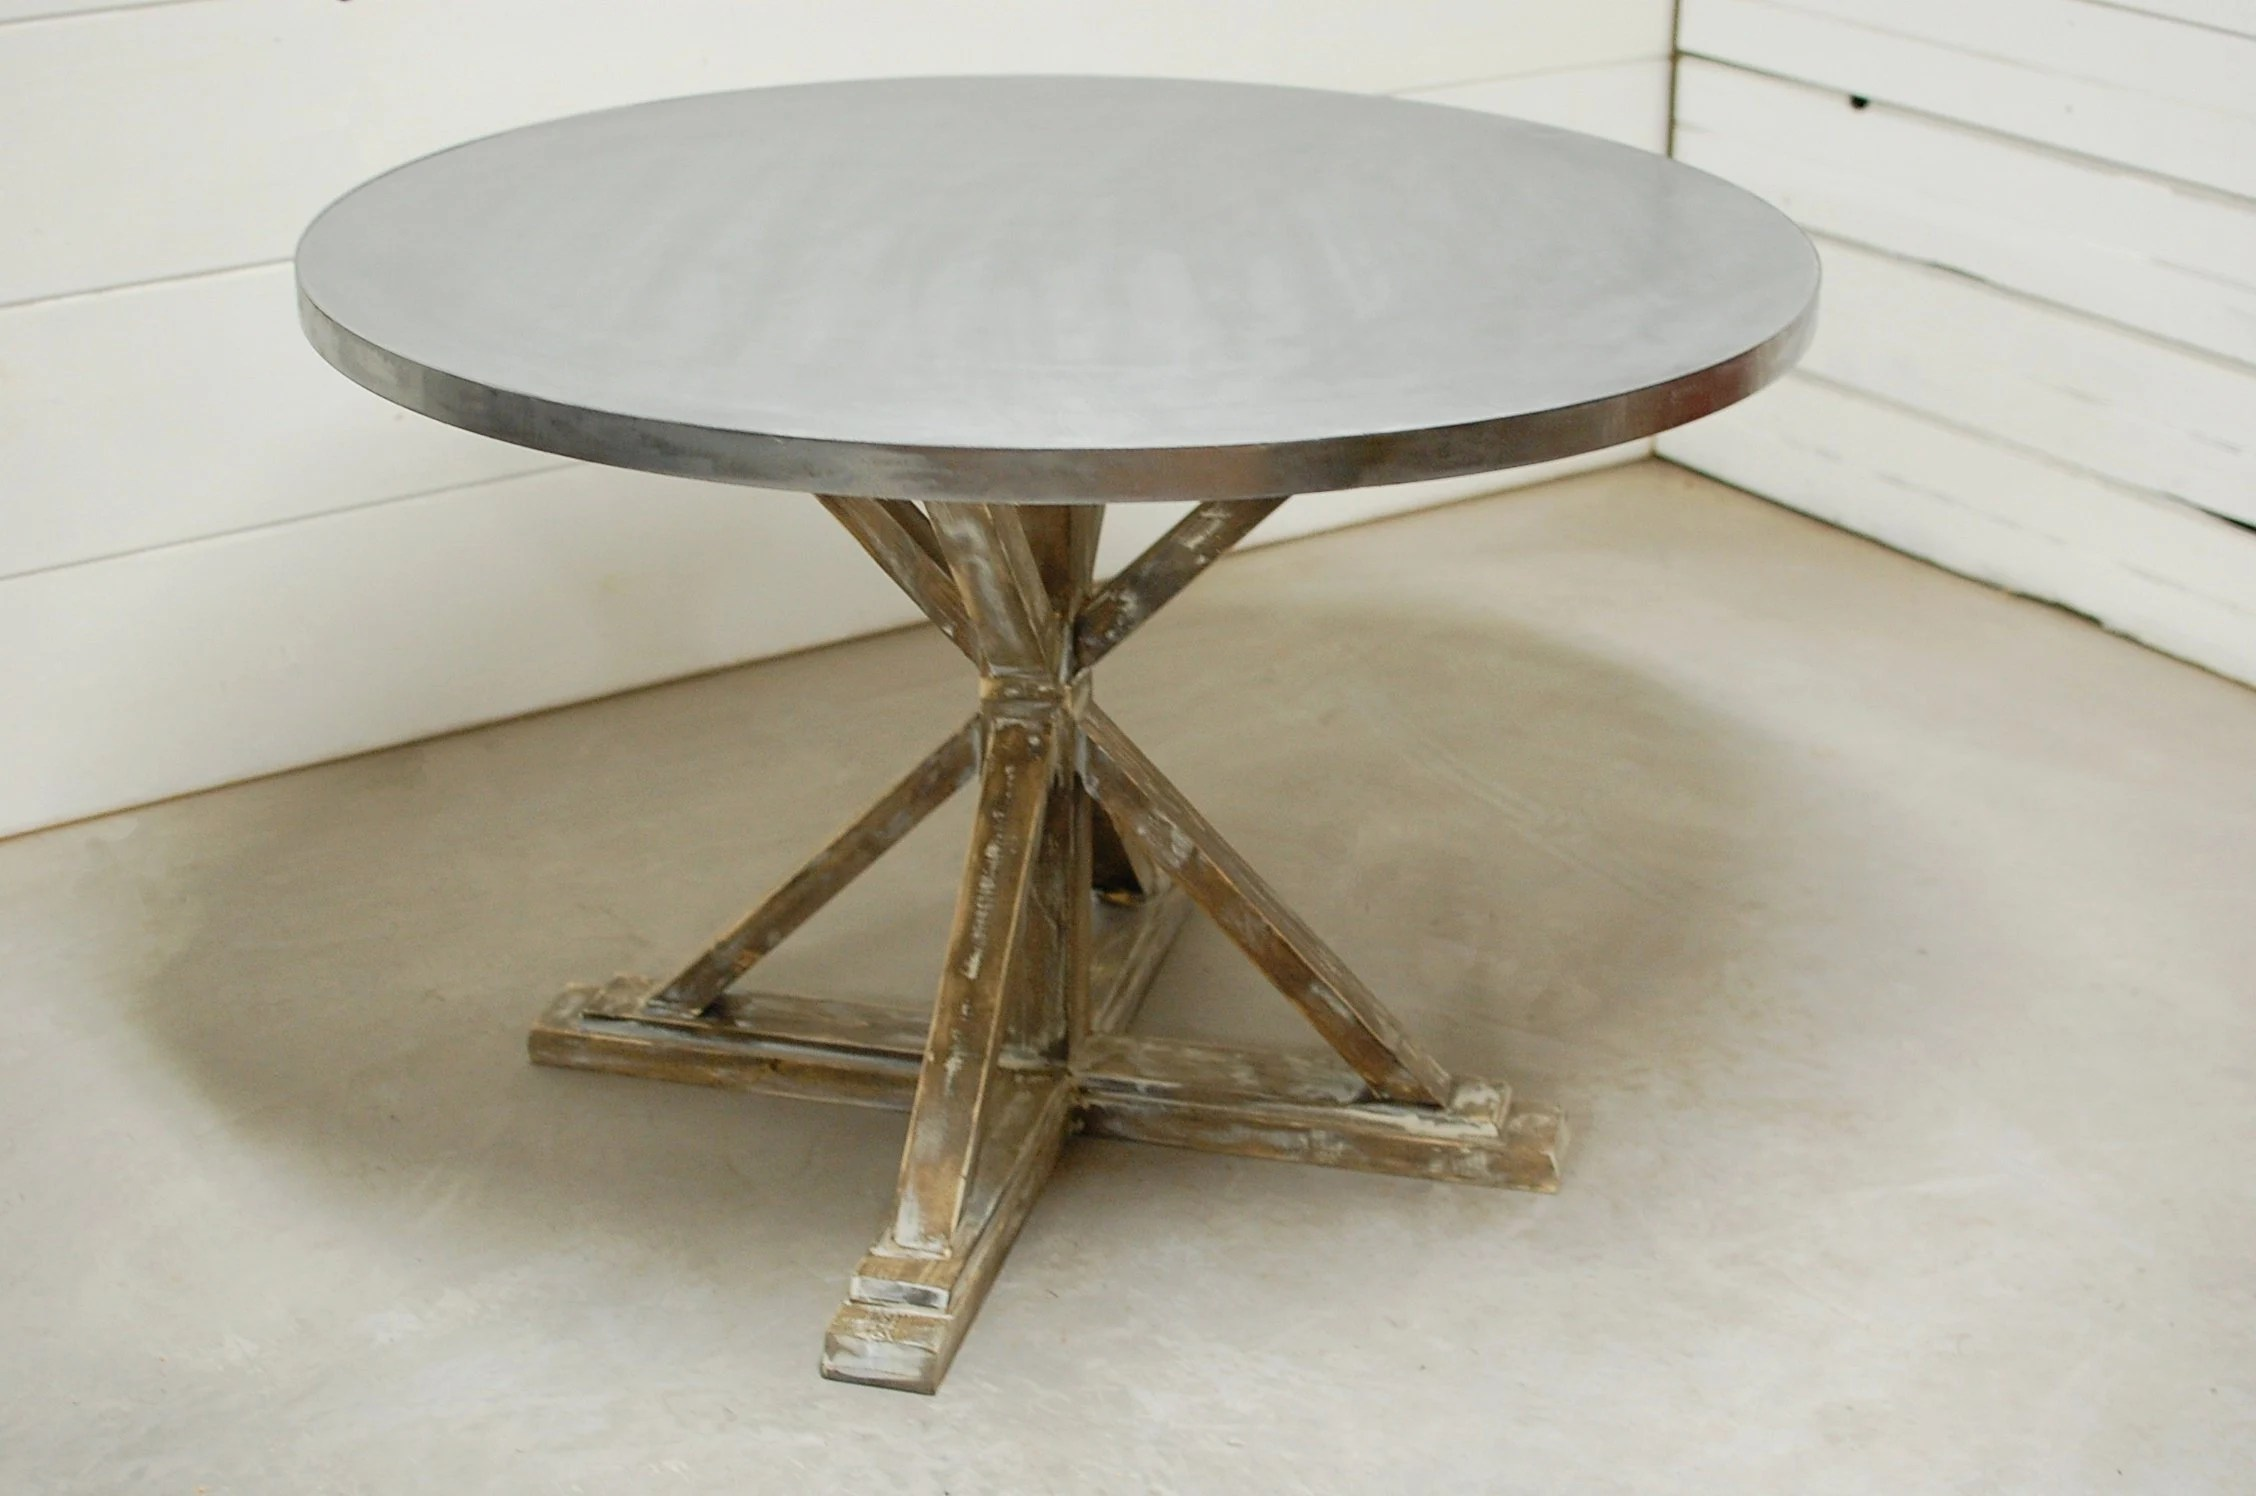 zinc kitchen table design images round dining industrial etsy image 0